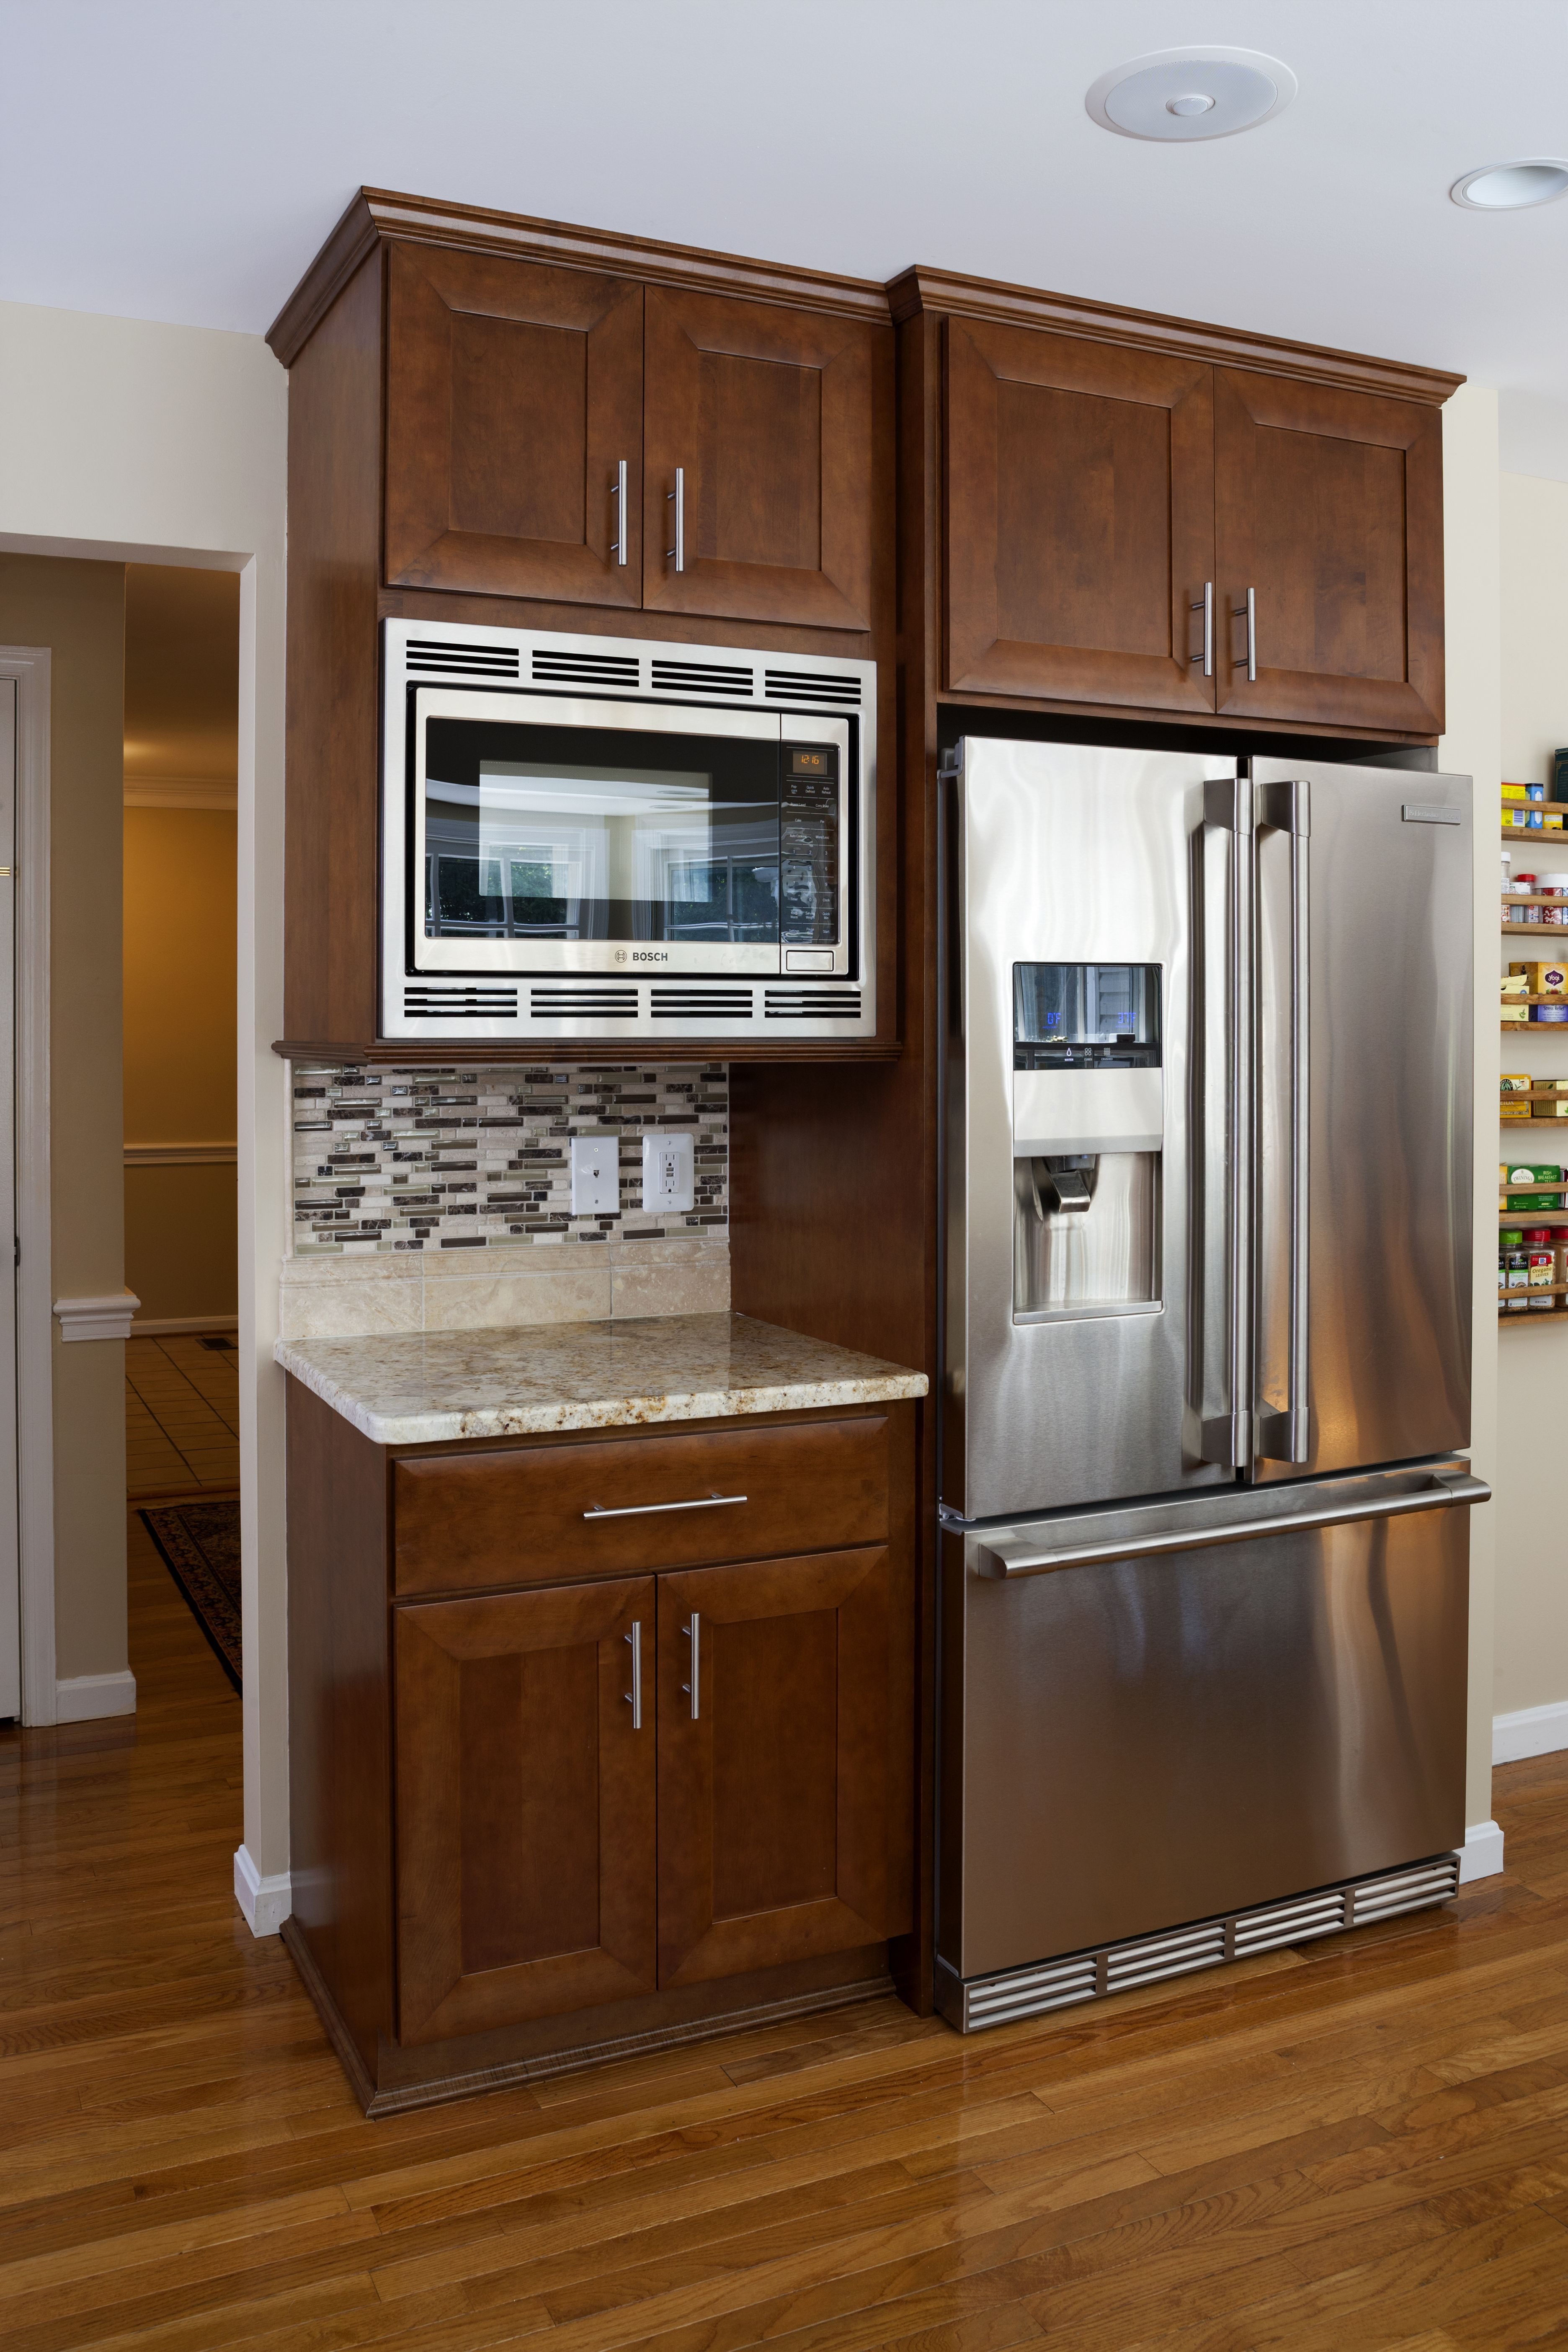 Fridge + Microwave cabinet beside the Butlers Pantry / entrance to ...